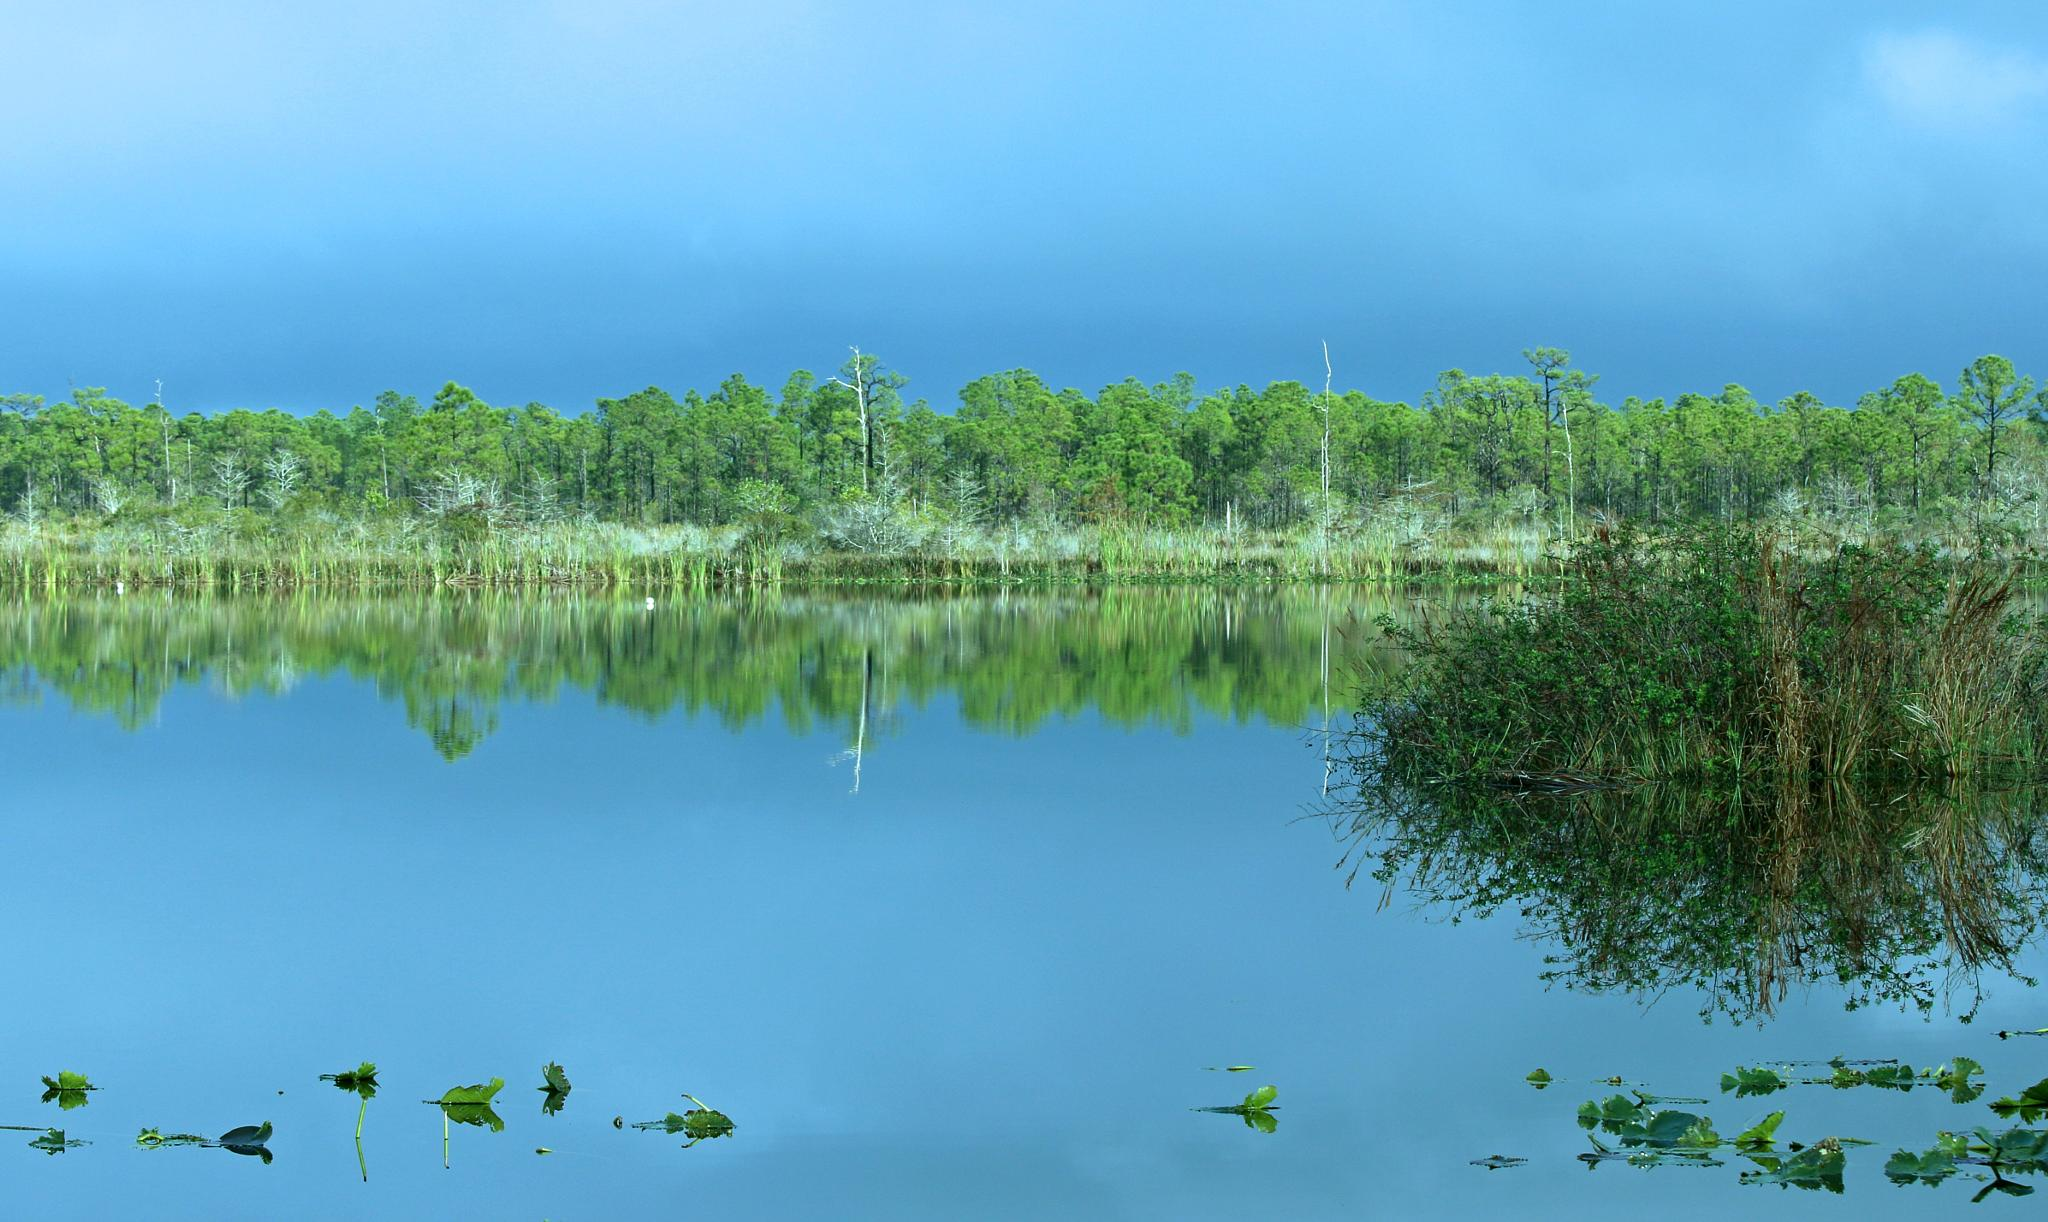 Blue Sky & Water Reflection by TClaud